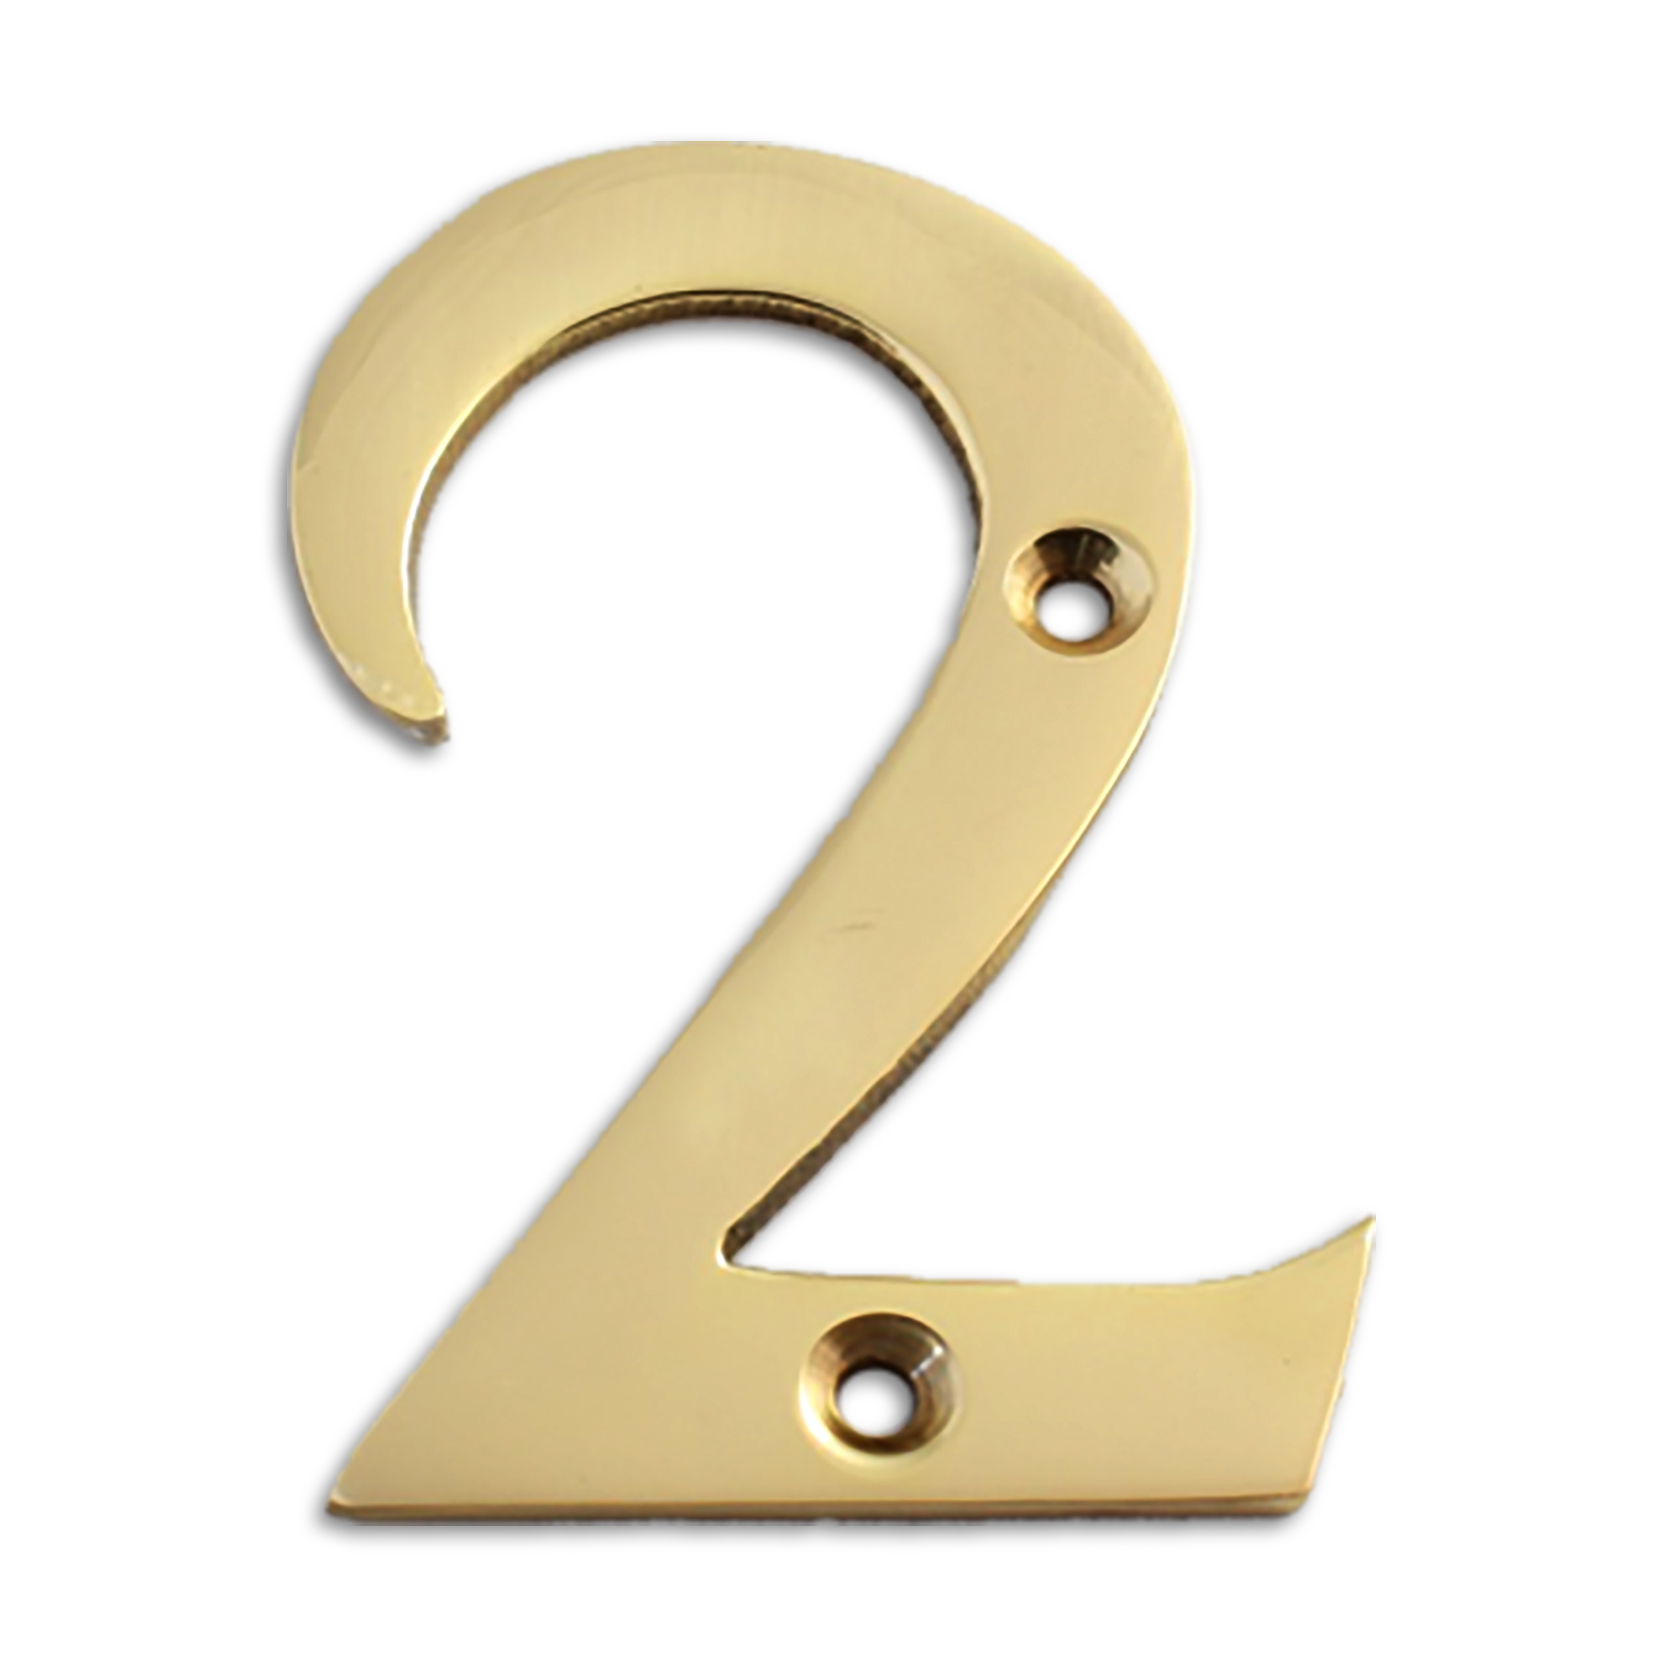 3-inch brass metal house number in polished brass finish - metal number 2